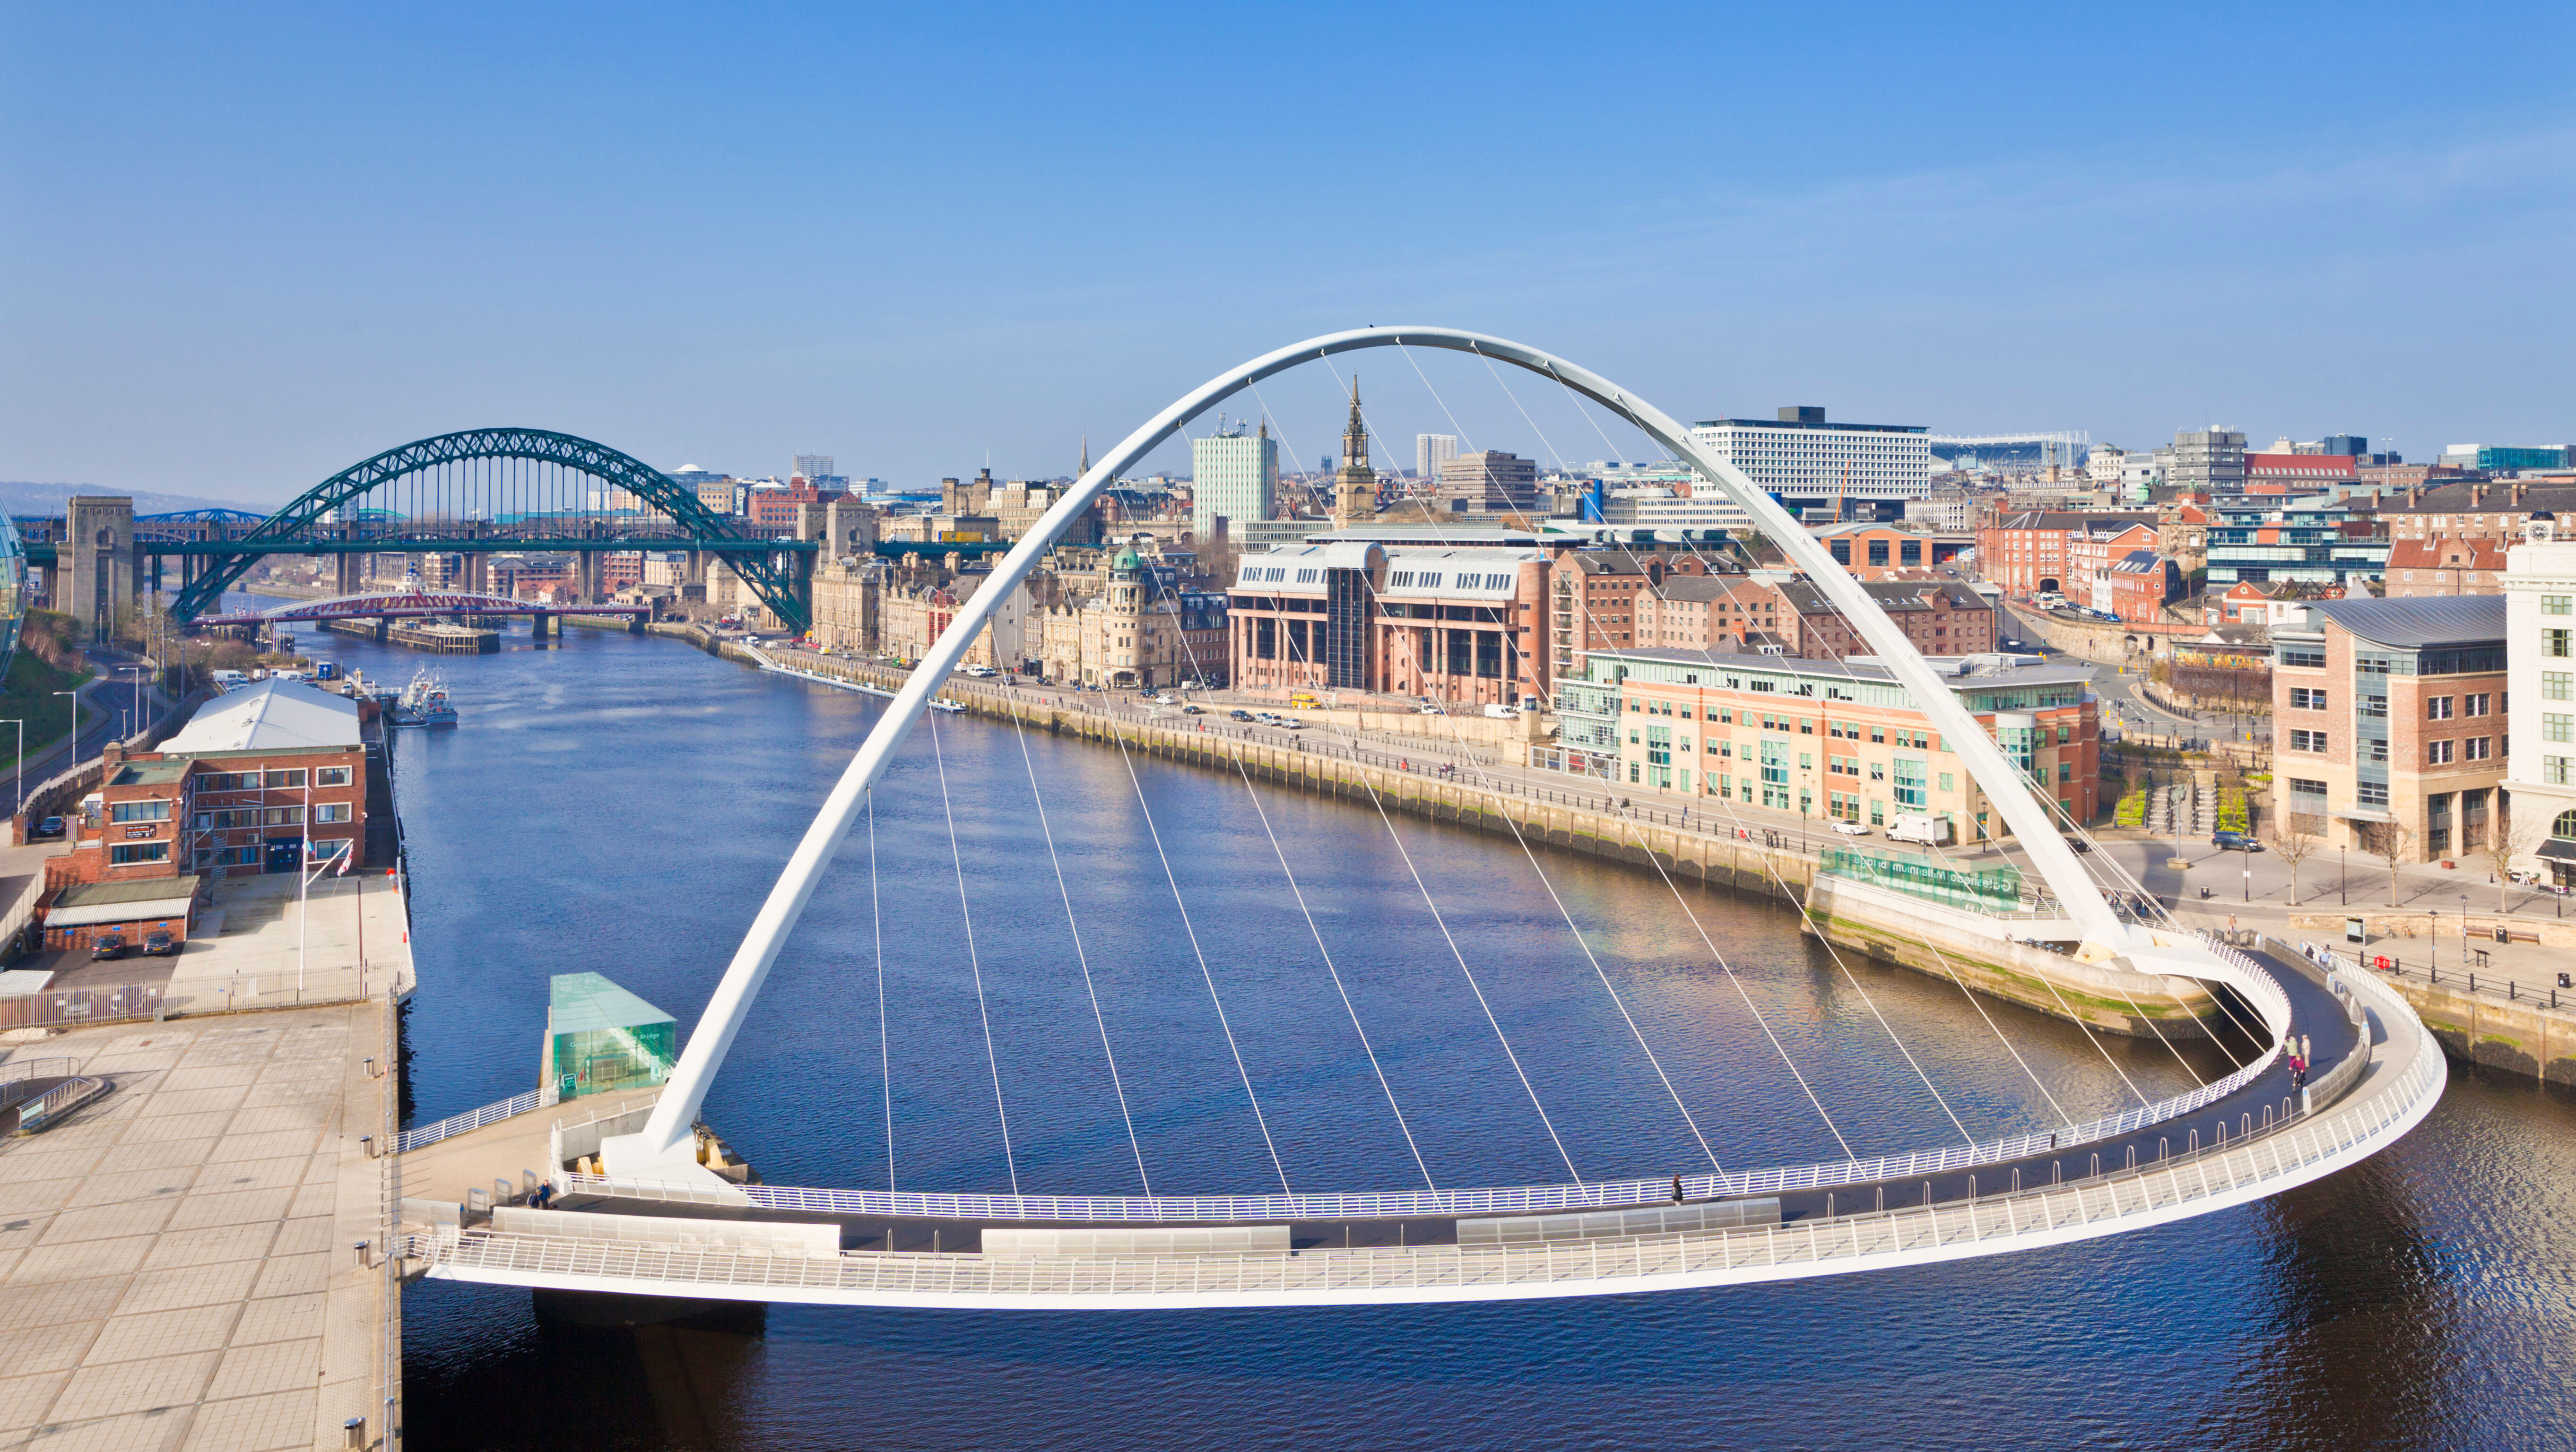 Must Visit Attractions In Newcastle Upon Tyne